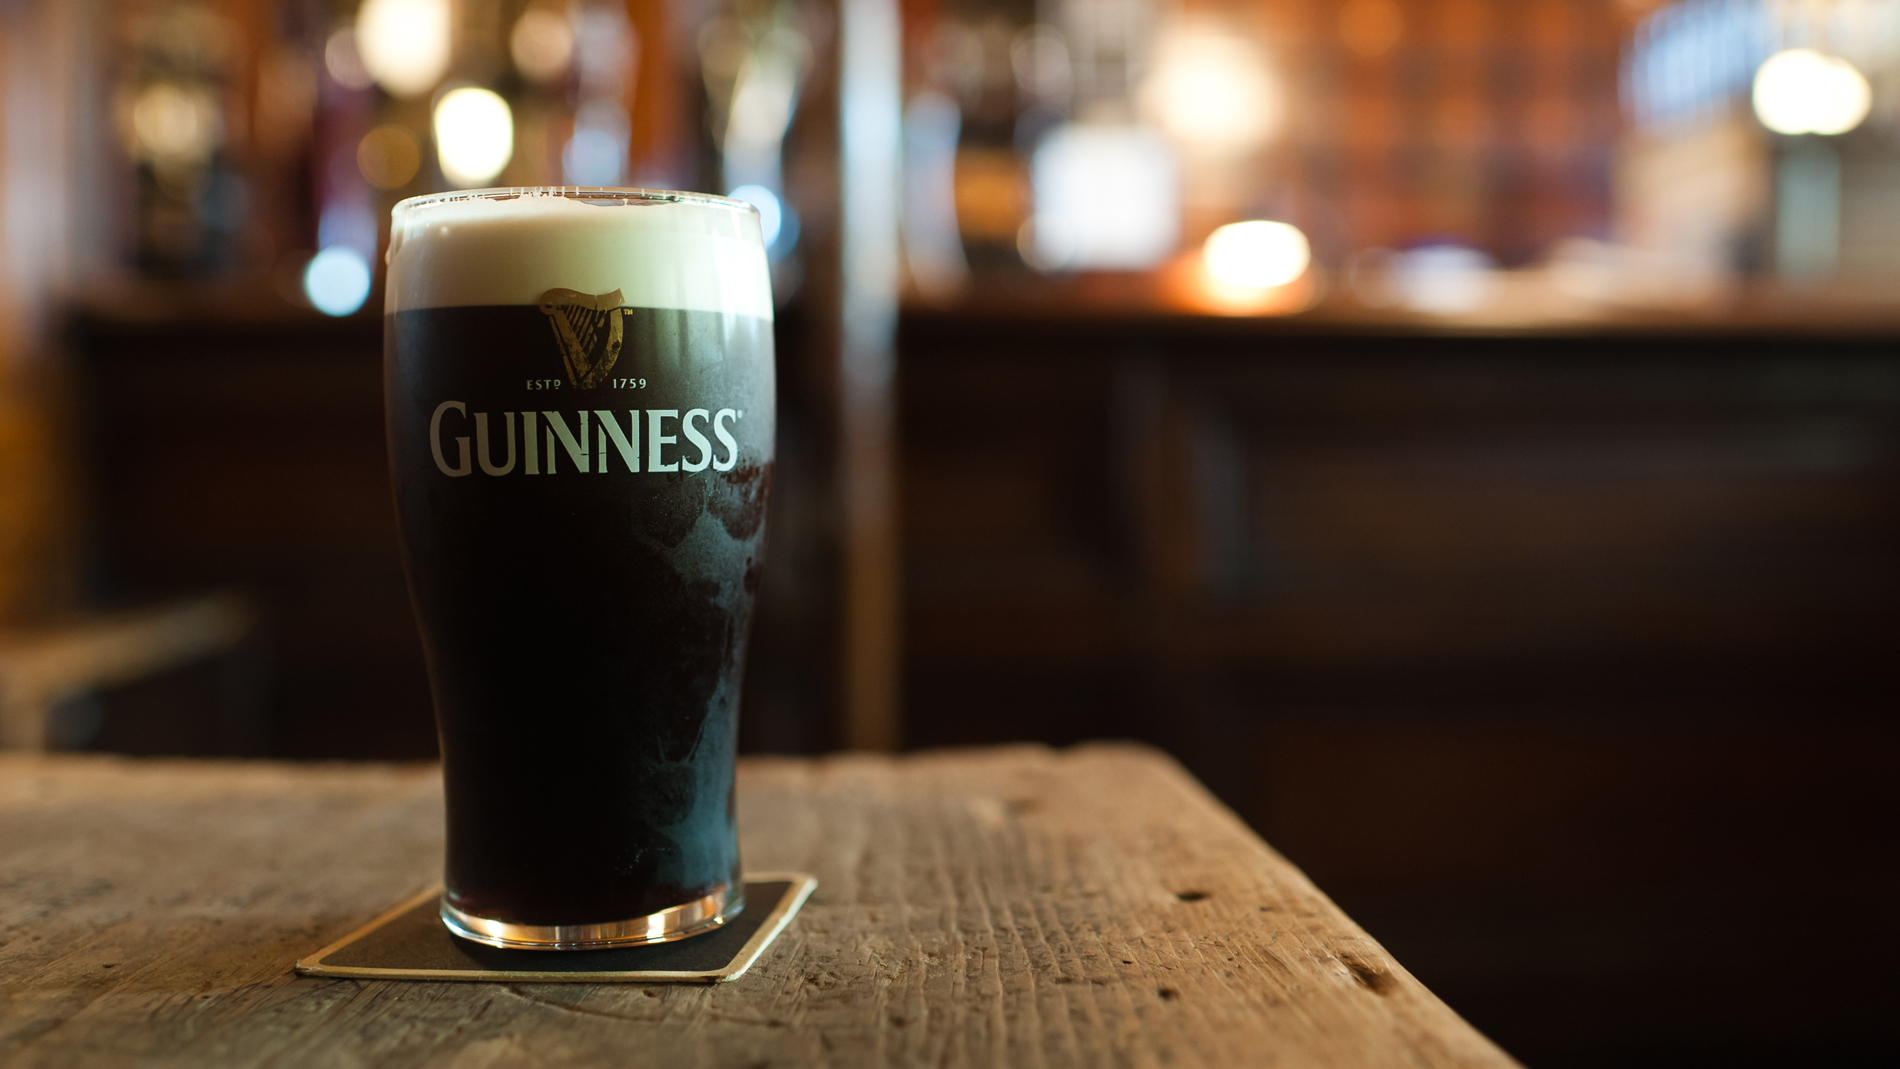 7 Ways to Cook with Guinness on St. Patrick's Day